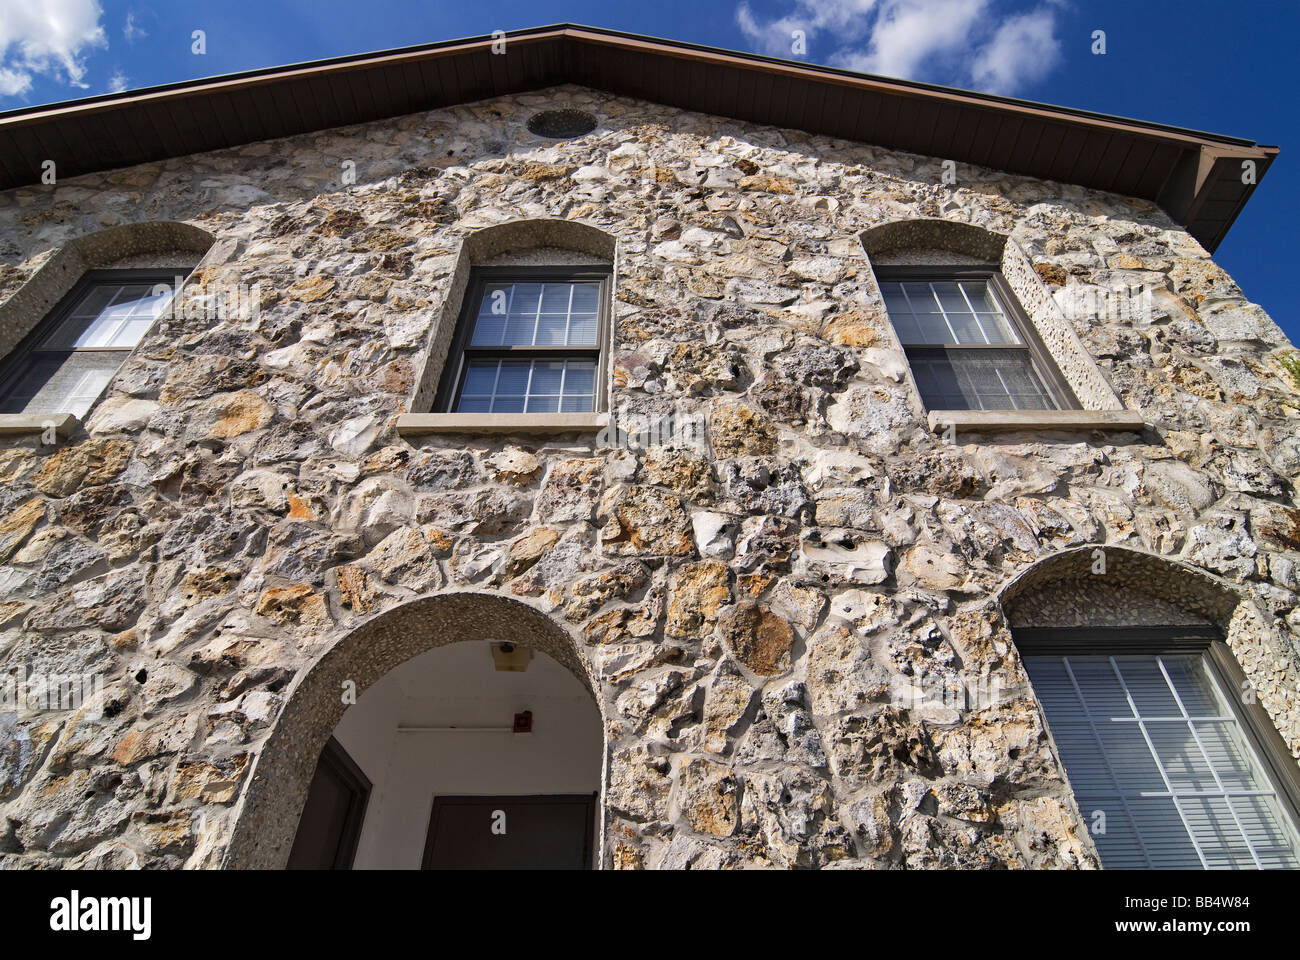 Natural Stone Construction : Annual strawberry festival plant city florida a building